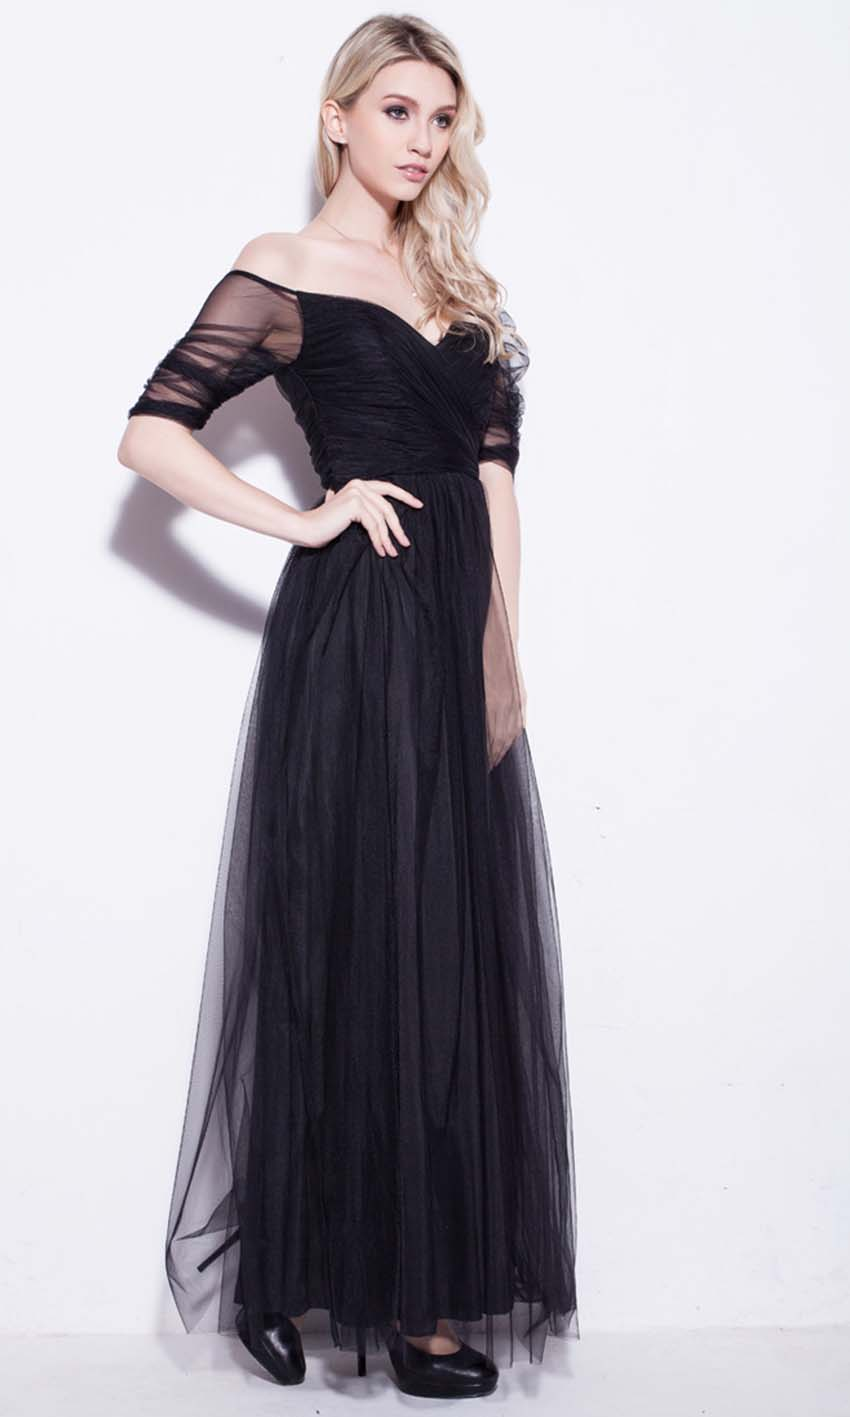 Black Net Off Shoulder Long Prom Dresses UK KSP250 [KSP250] - £92.00 ...